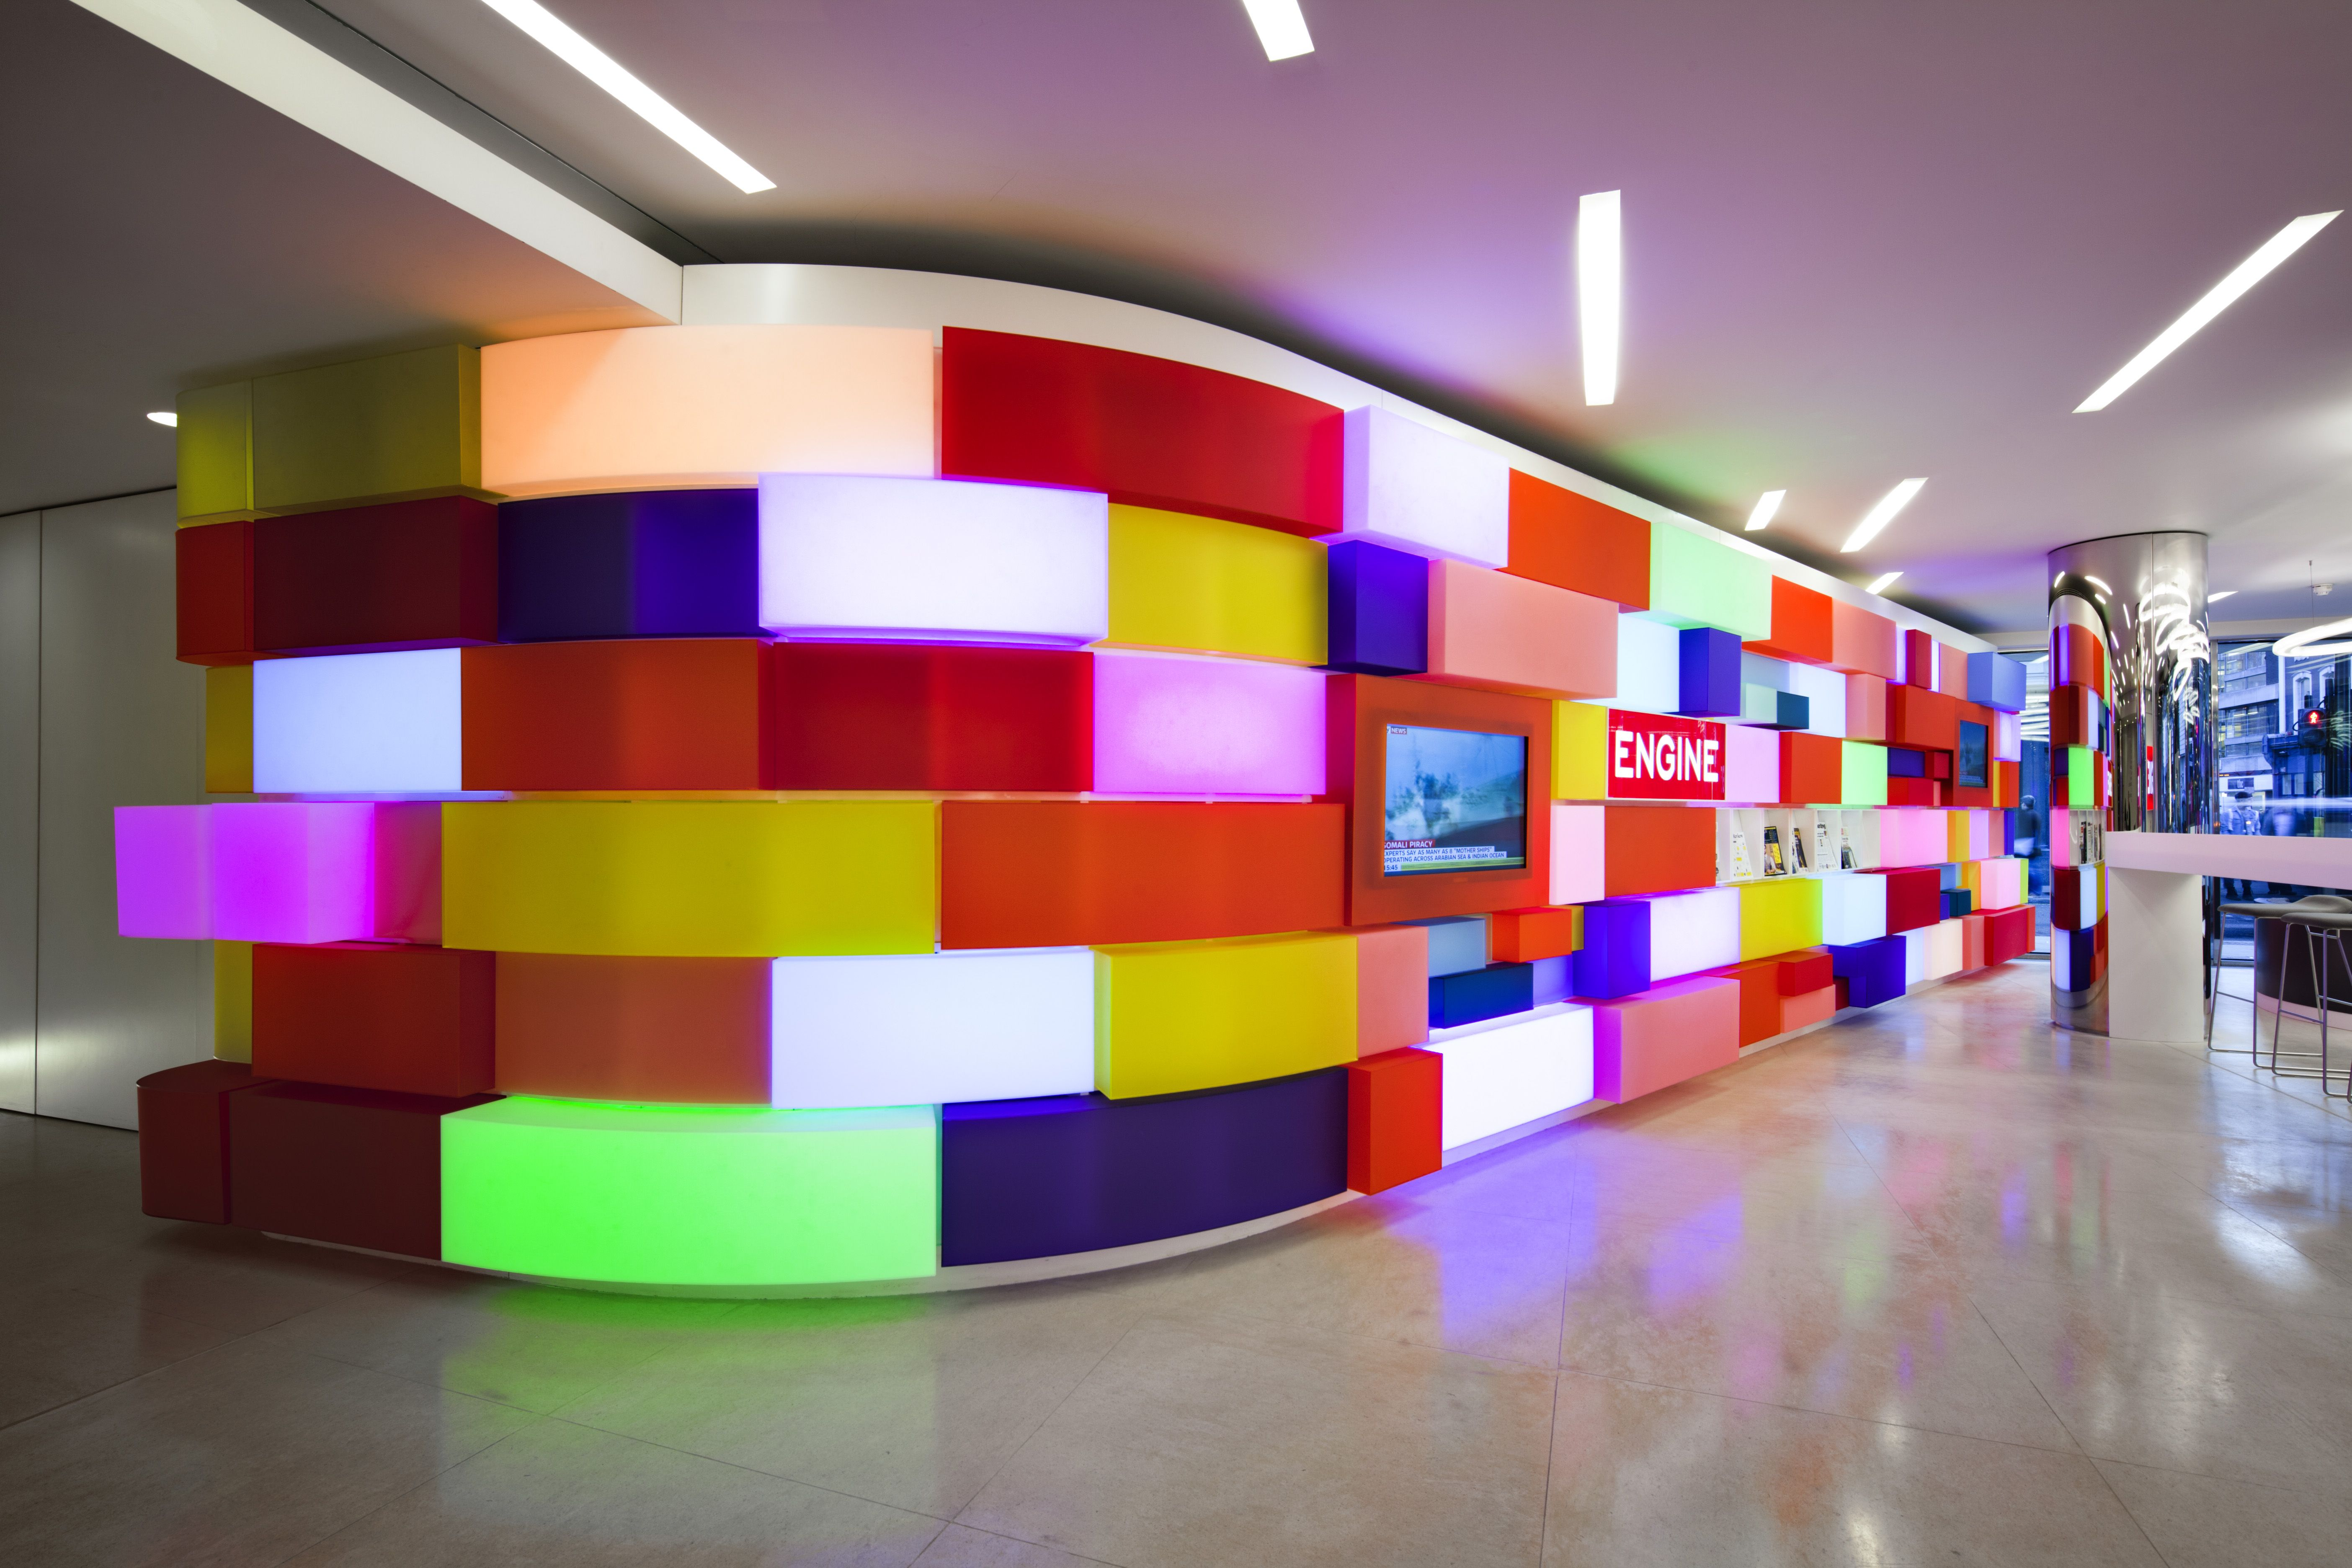 lego head office. delighful office lego head office workplace into the metro office brings colour  art acrylicize wonderful to lego head office v